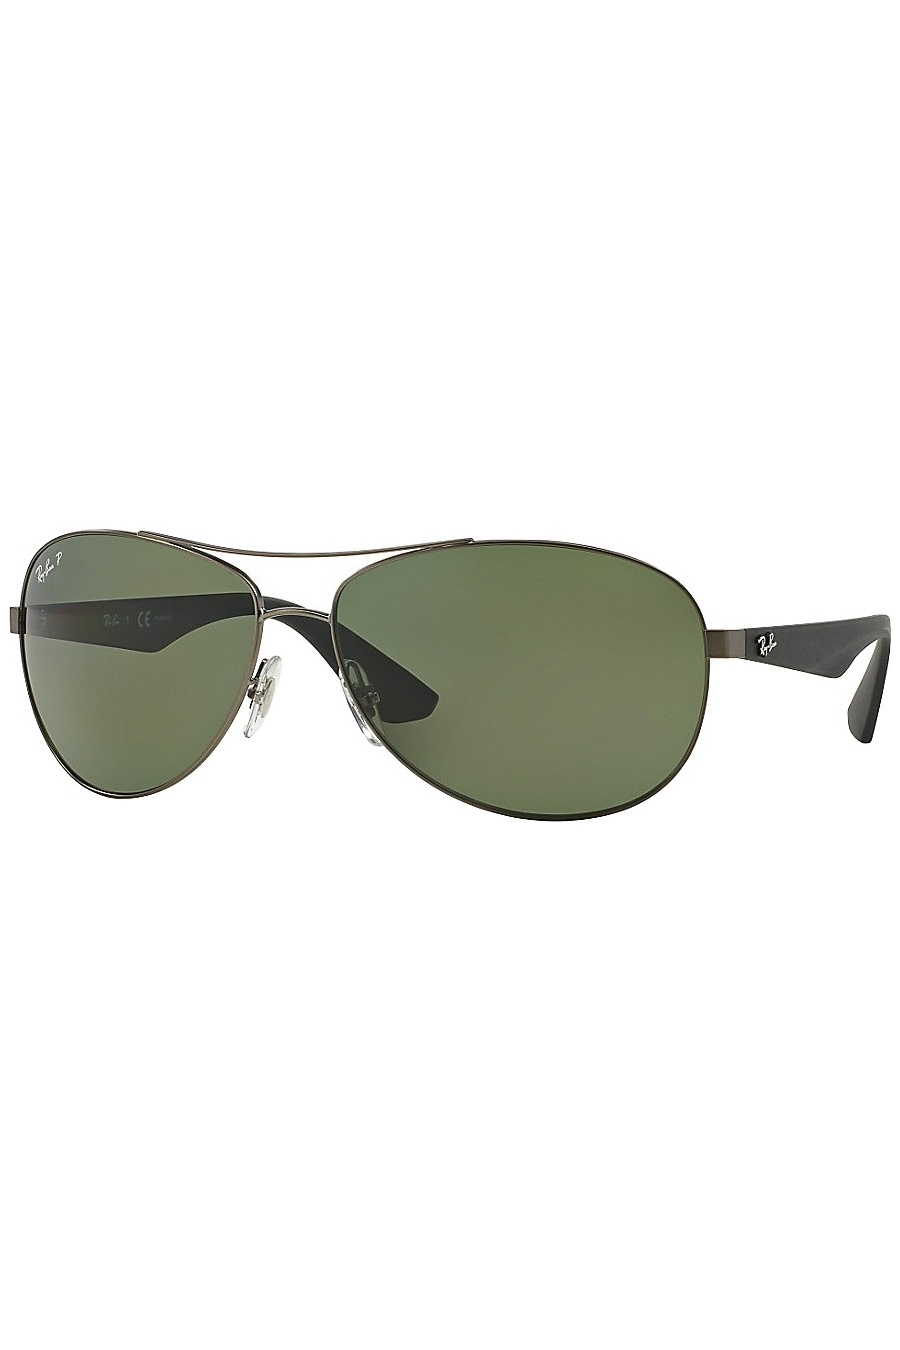 RAY BAN RB3526 - 0299A 63 ACTIVE LIFESTYLE